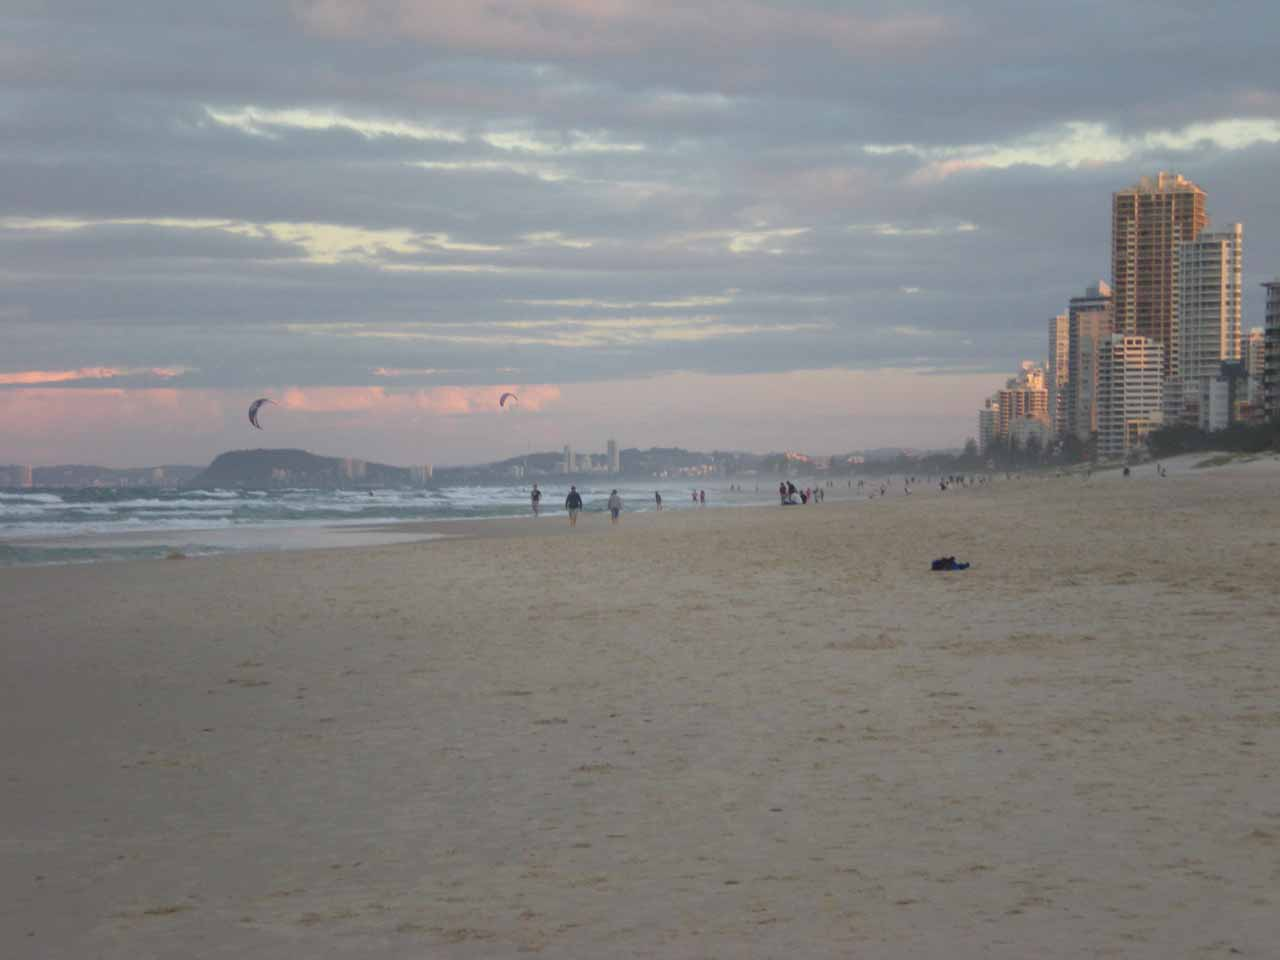 Looking south along the beach at Surfer's Paradise